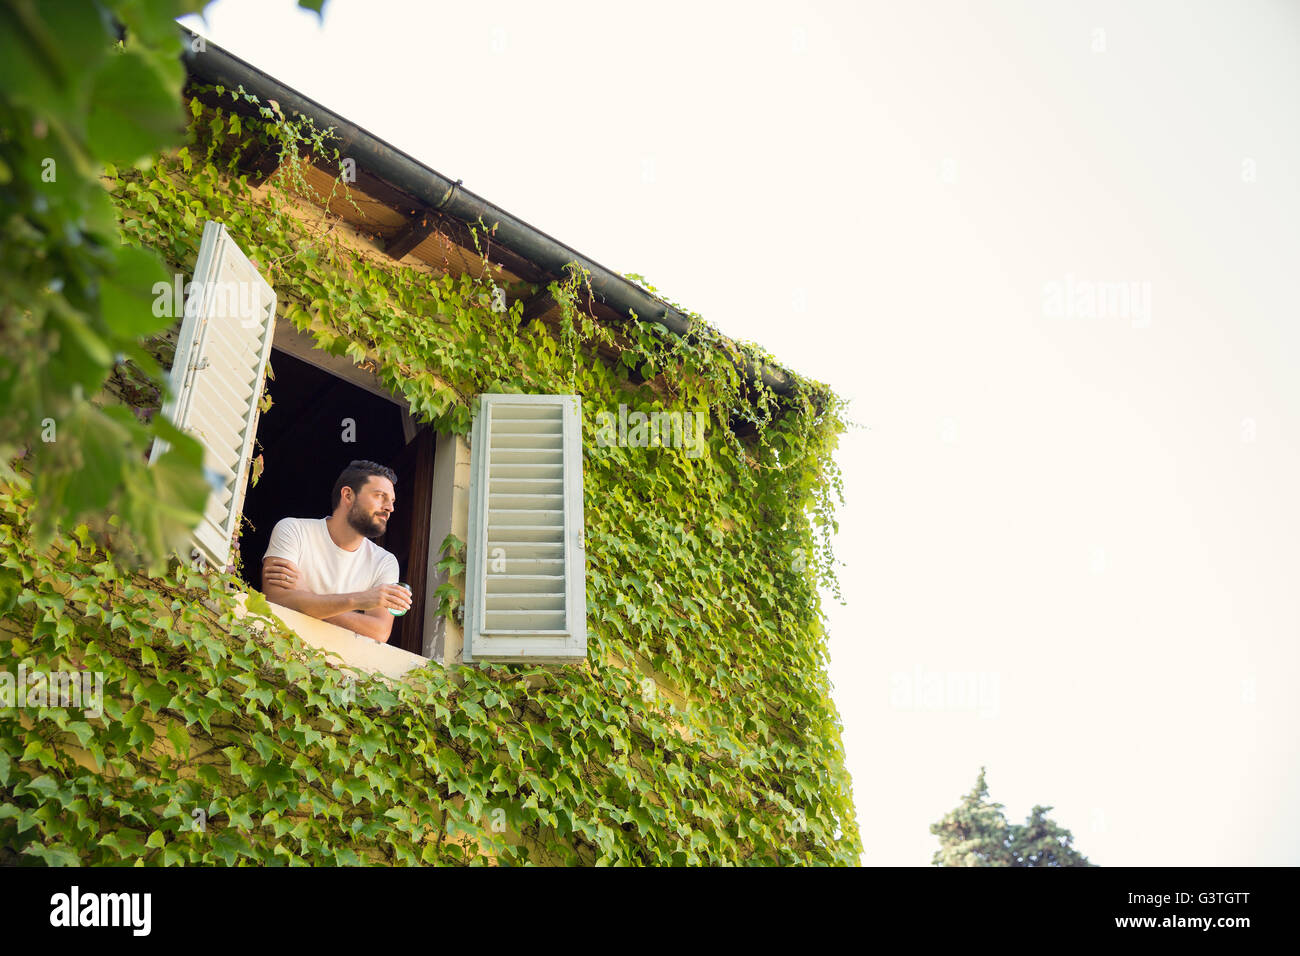 Italy, Tuscany, Dicomano, Man looking out from window of overgrown house - Stock Image